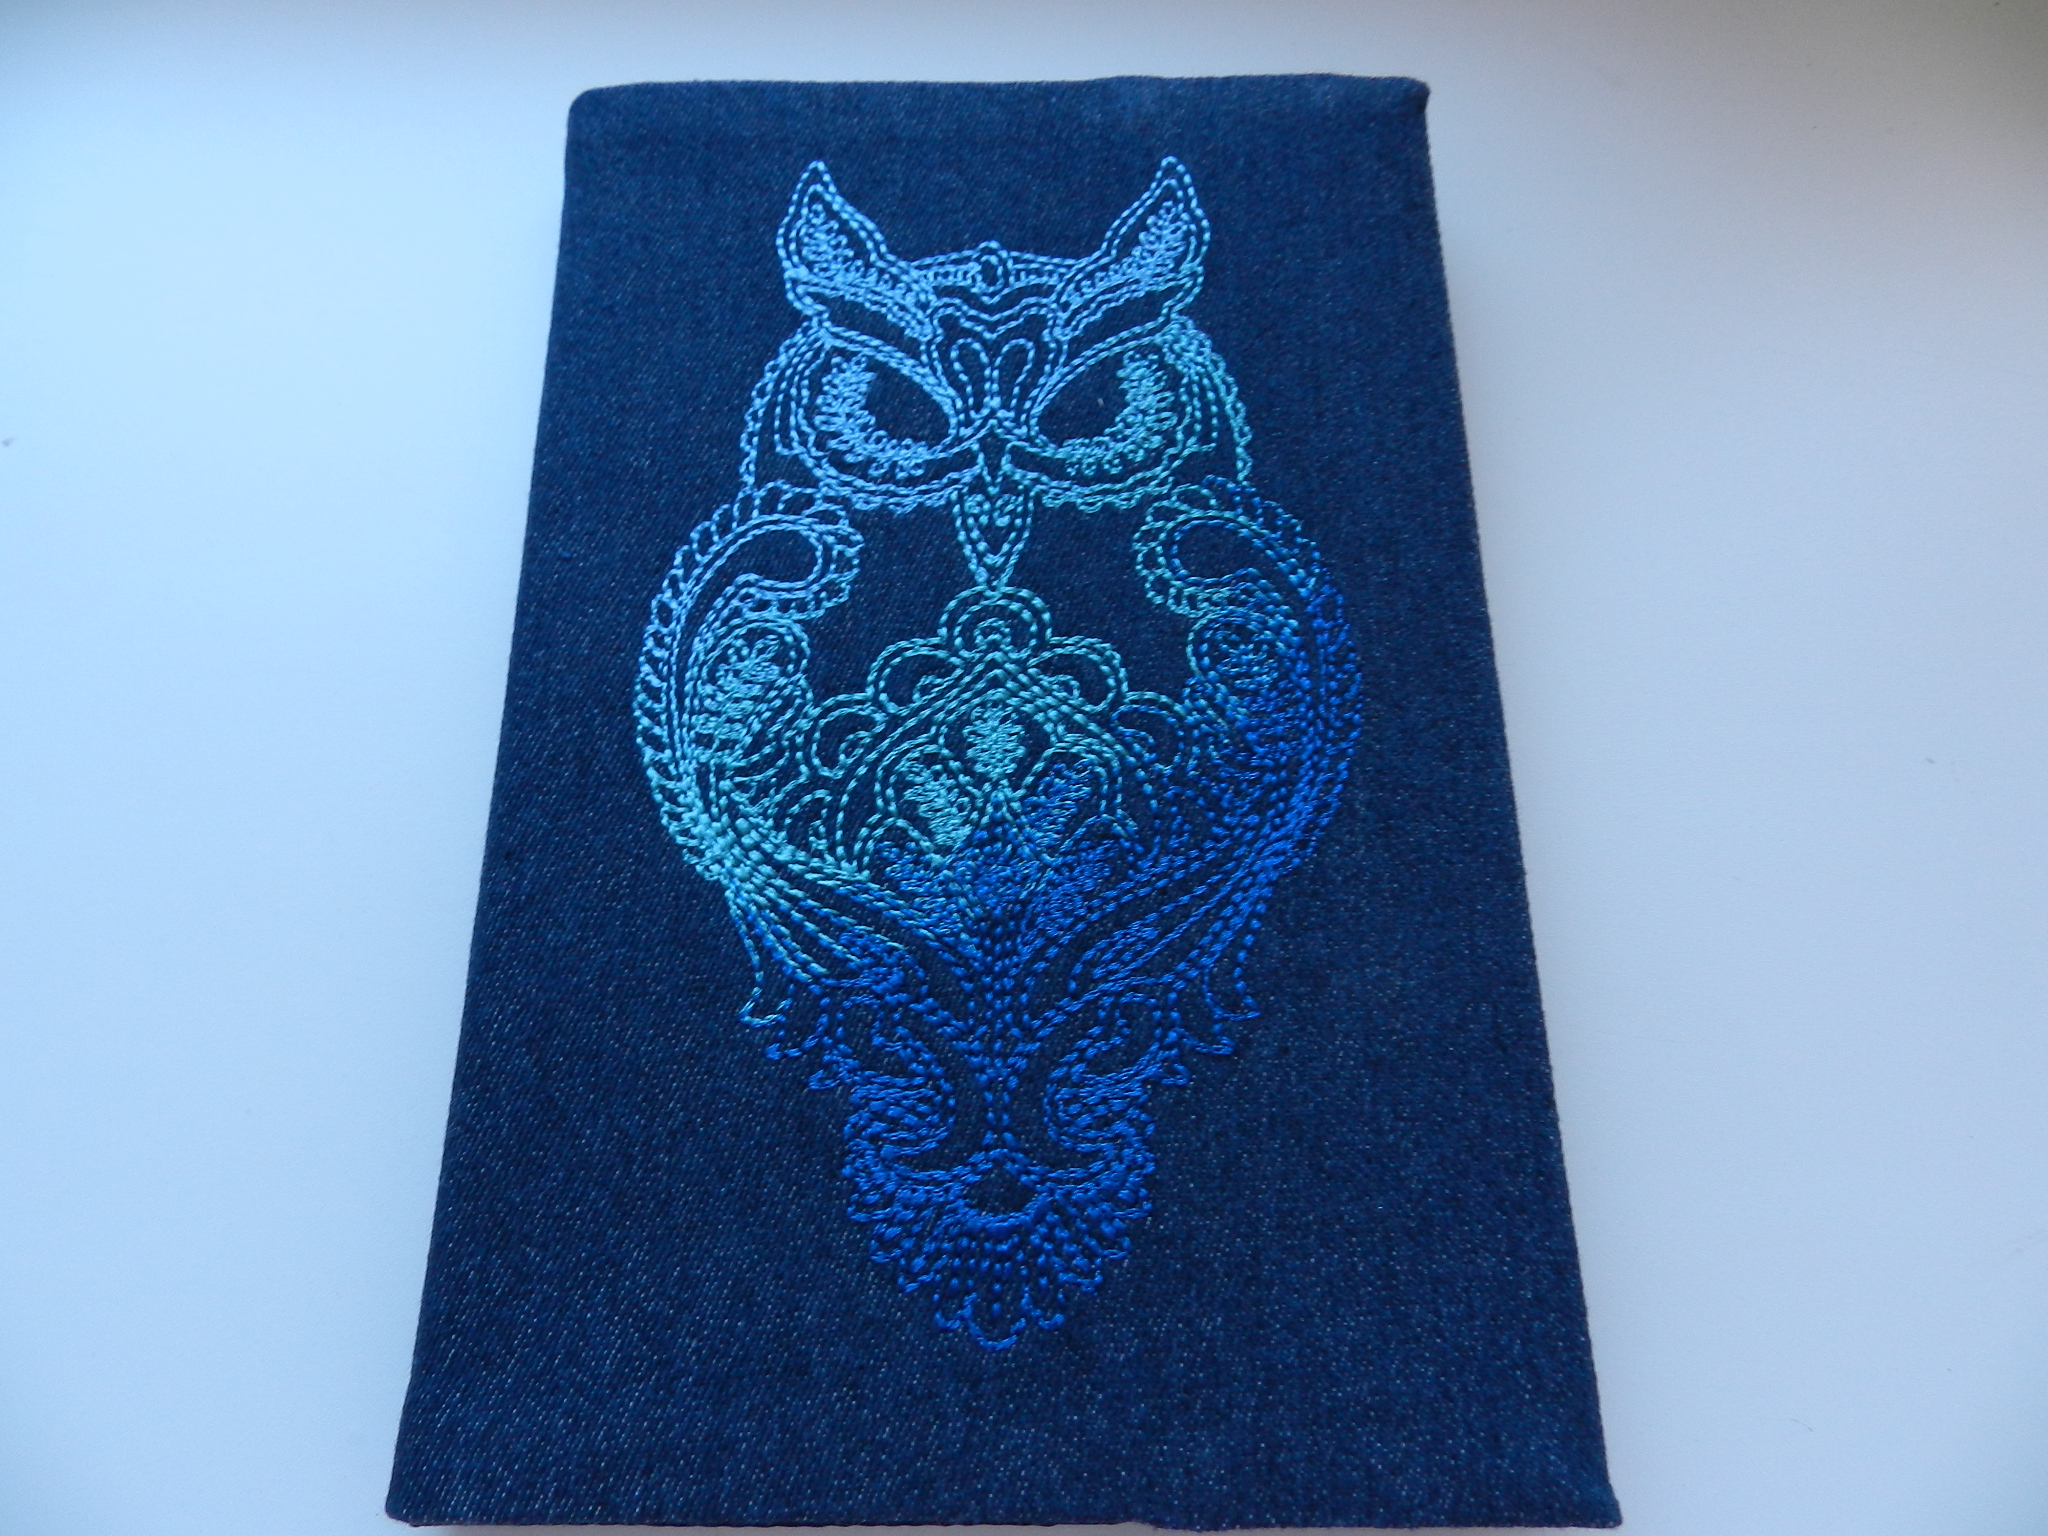 Embroidered book cover with owl